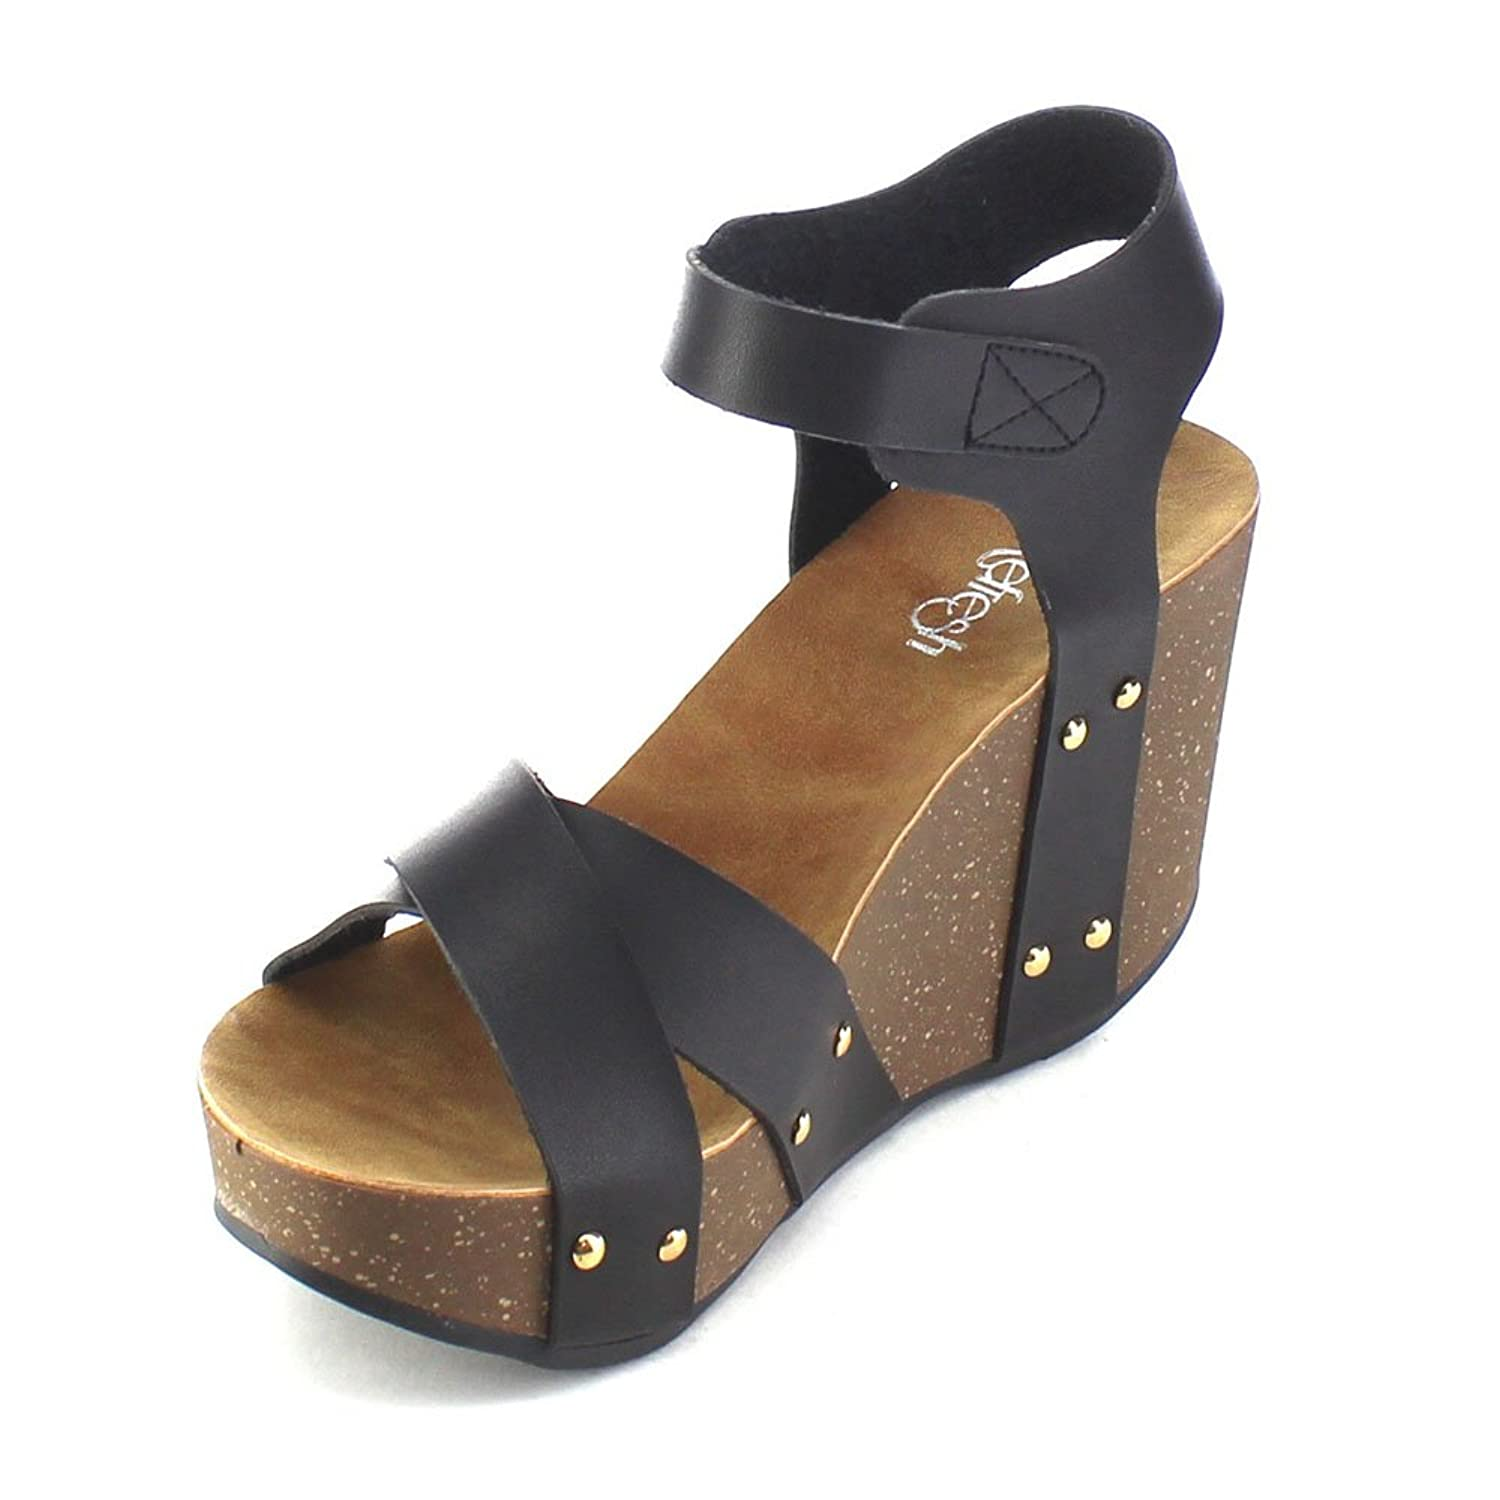 wedges shoes made amazon espadrilles wedge com spain strap comfortable heel closed classic ankle pubol dp in comforter most viscata toe